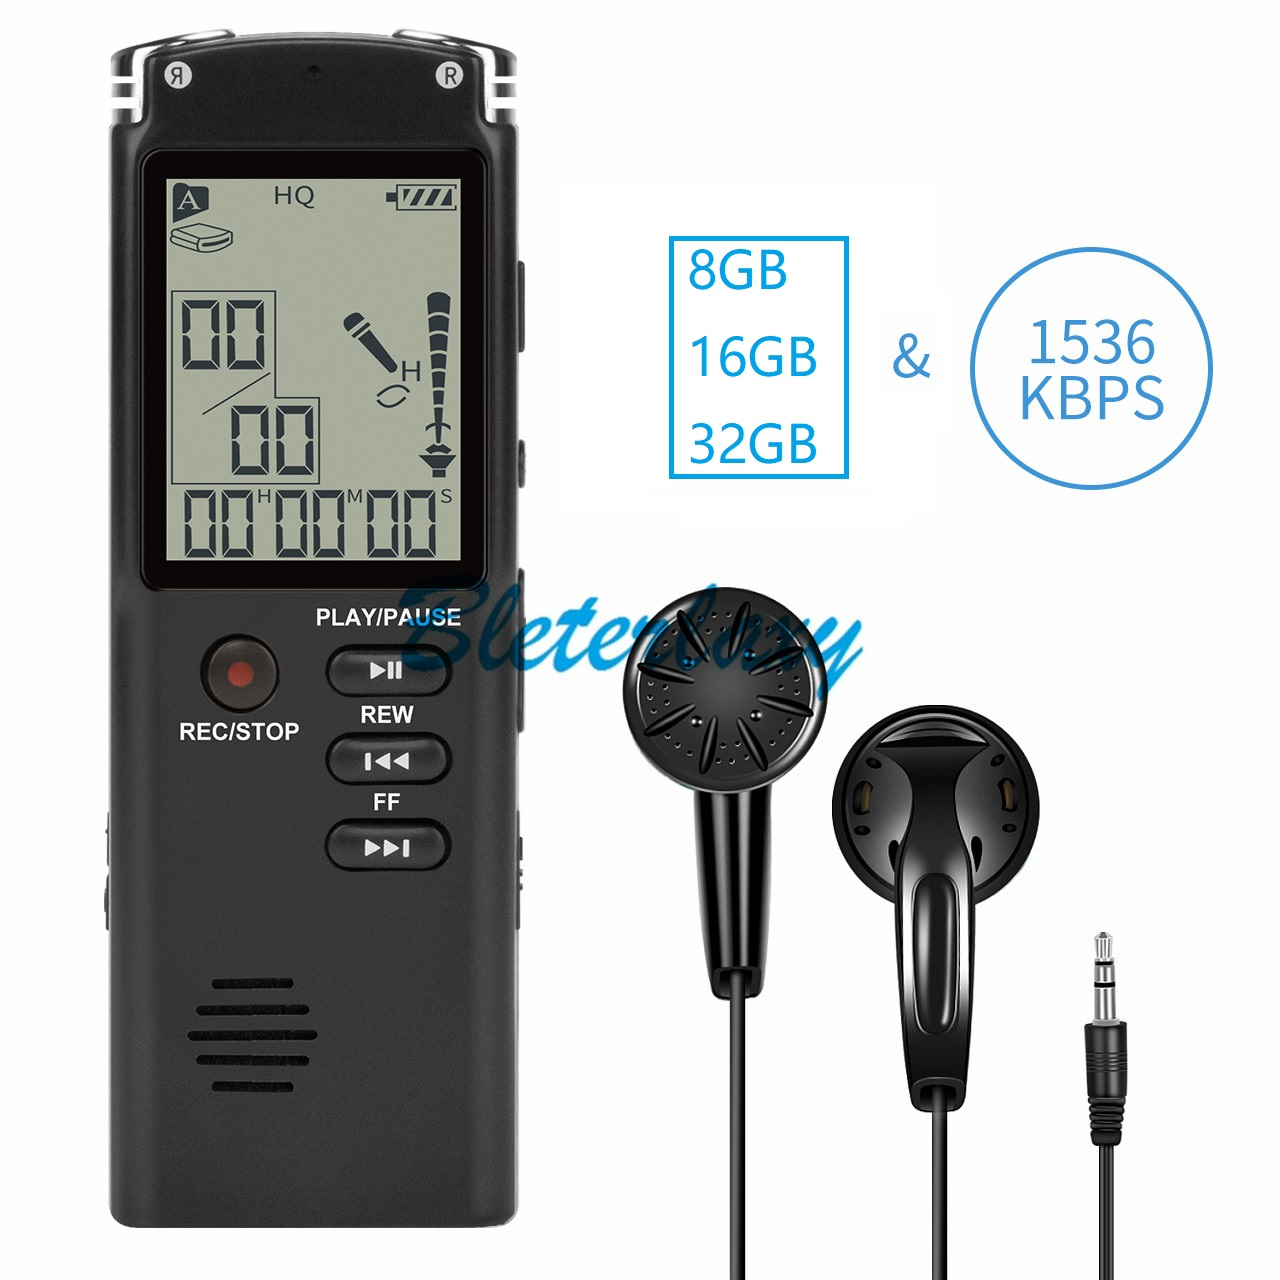 8 GB/16 GB/32 GB Voice <font><b>Recorder</b></font> USB Professional 96 Stunden Diktiergerät Digital Audio Voice <font><b>Recorder</b></font> Mit WAV, <font><b>MP3</b></font> <font><b>Player</b></font> image